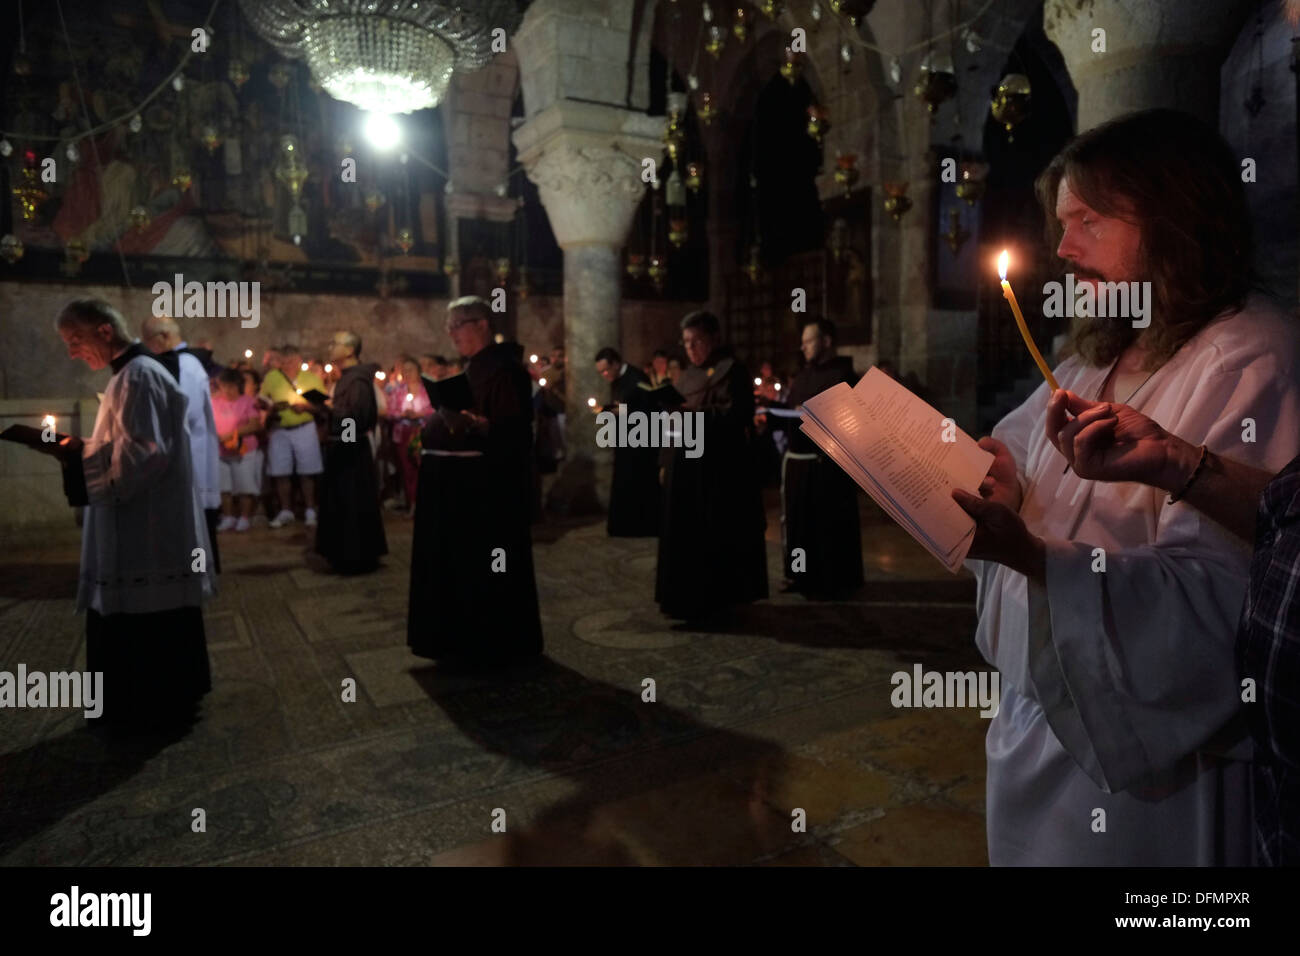 Franciscan Monks Catholic Stock Photos Amp Franciscan Monks Catholic Stock Images